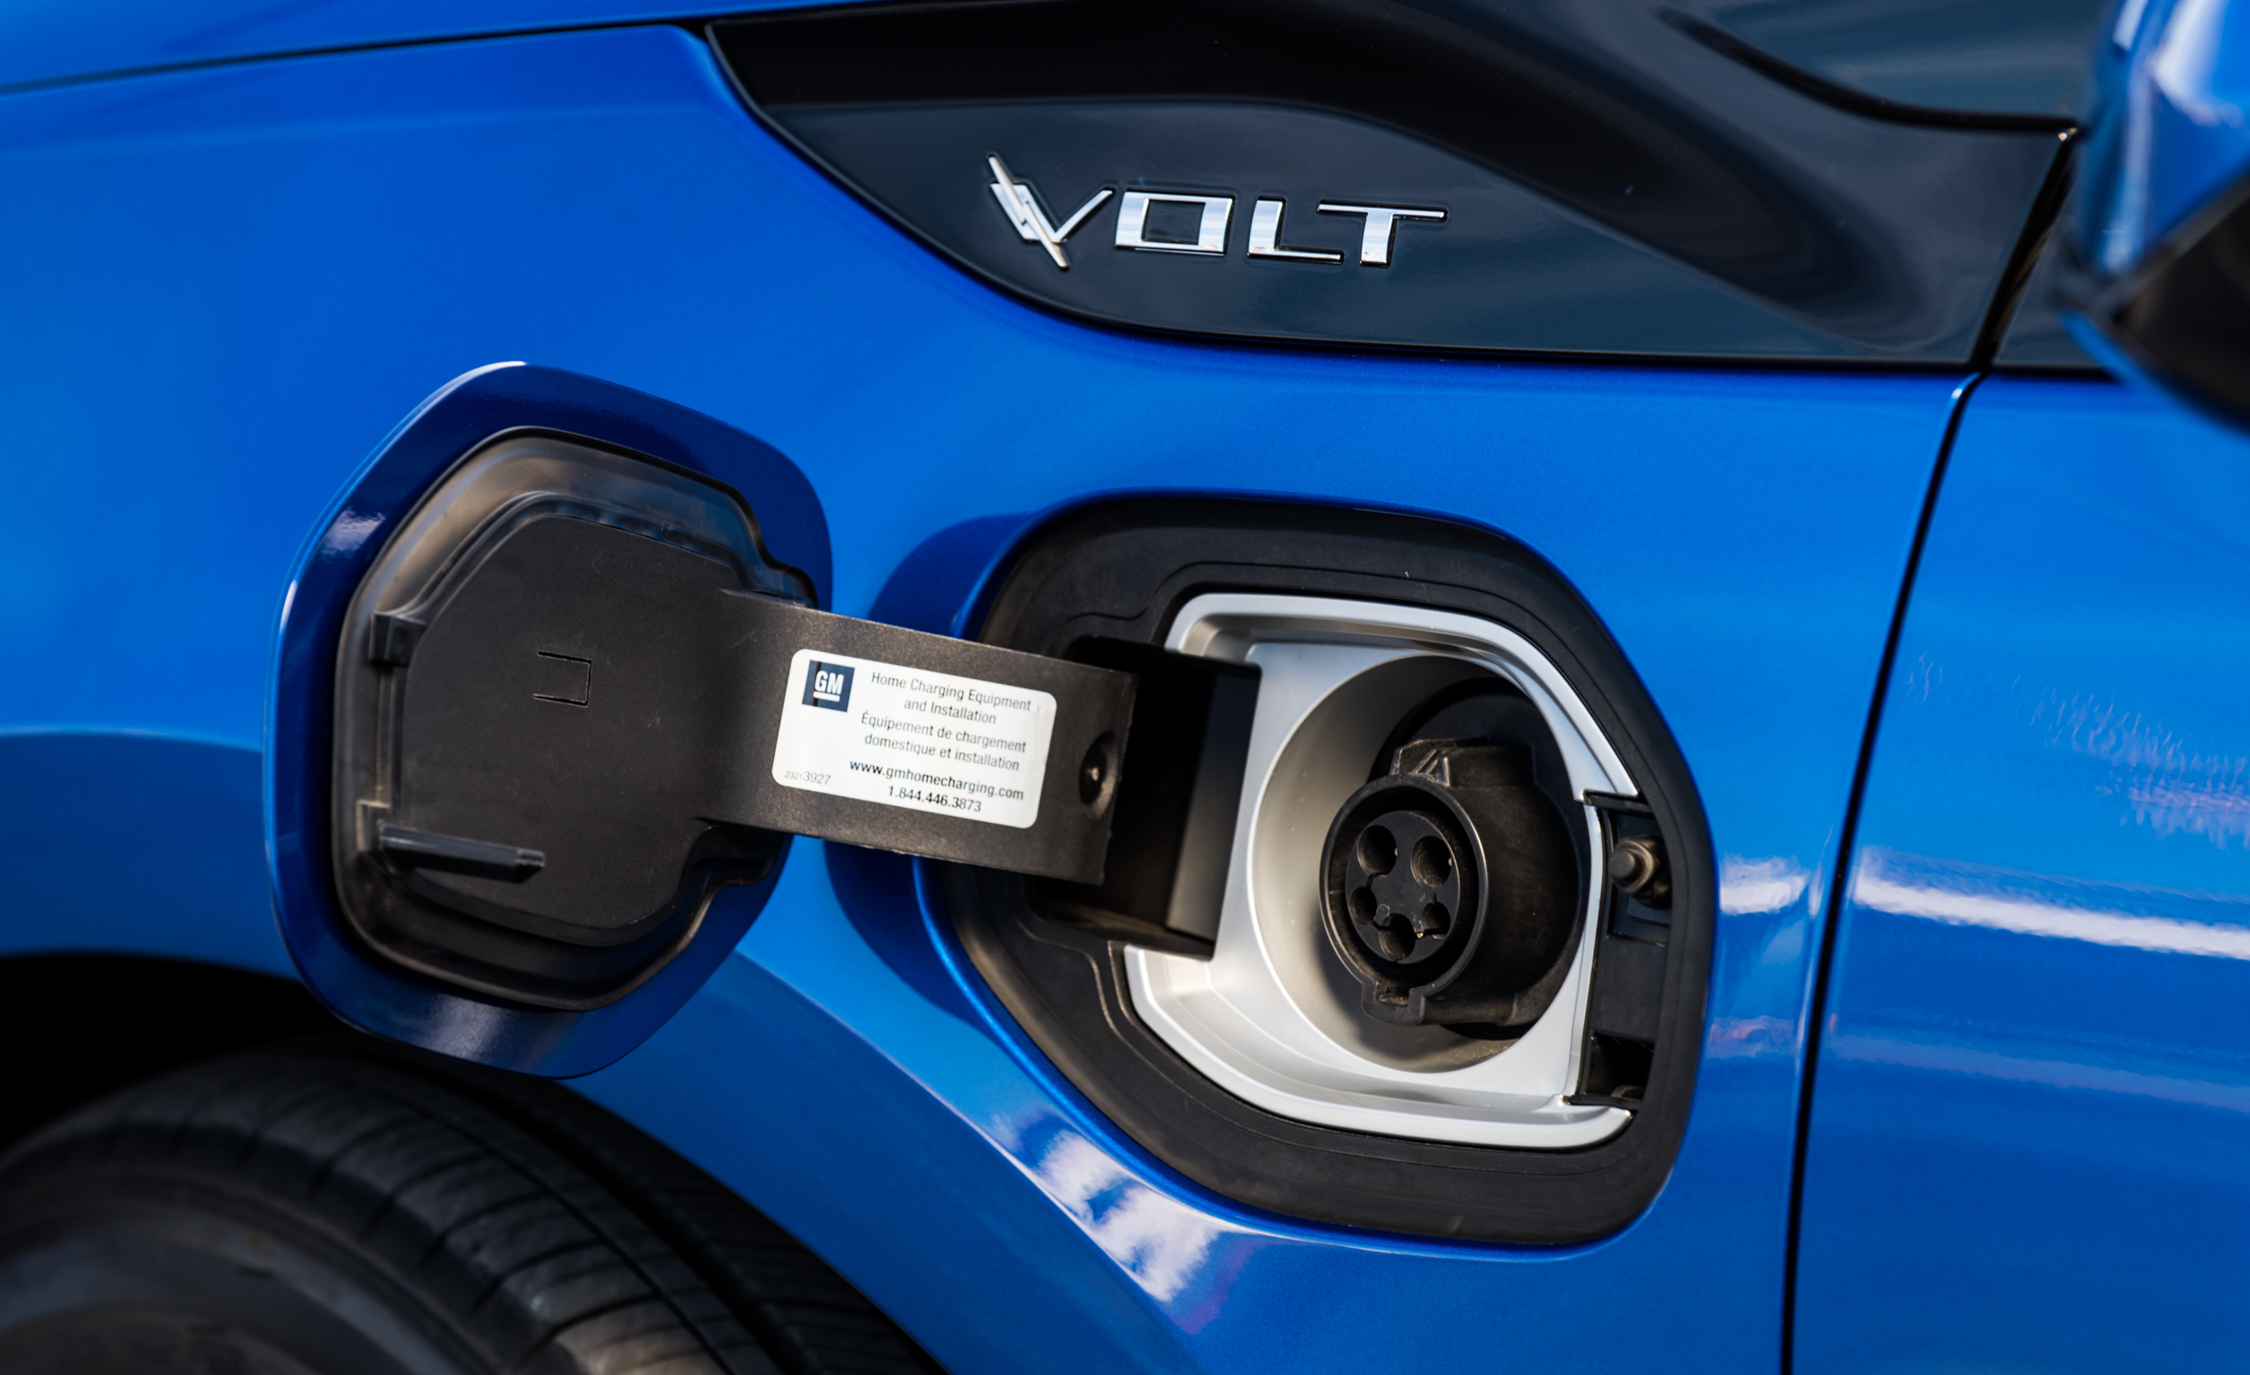 2017 Chevrolet Volt Exterior View Charge Port (Photo 4 of 16)